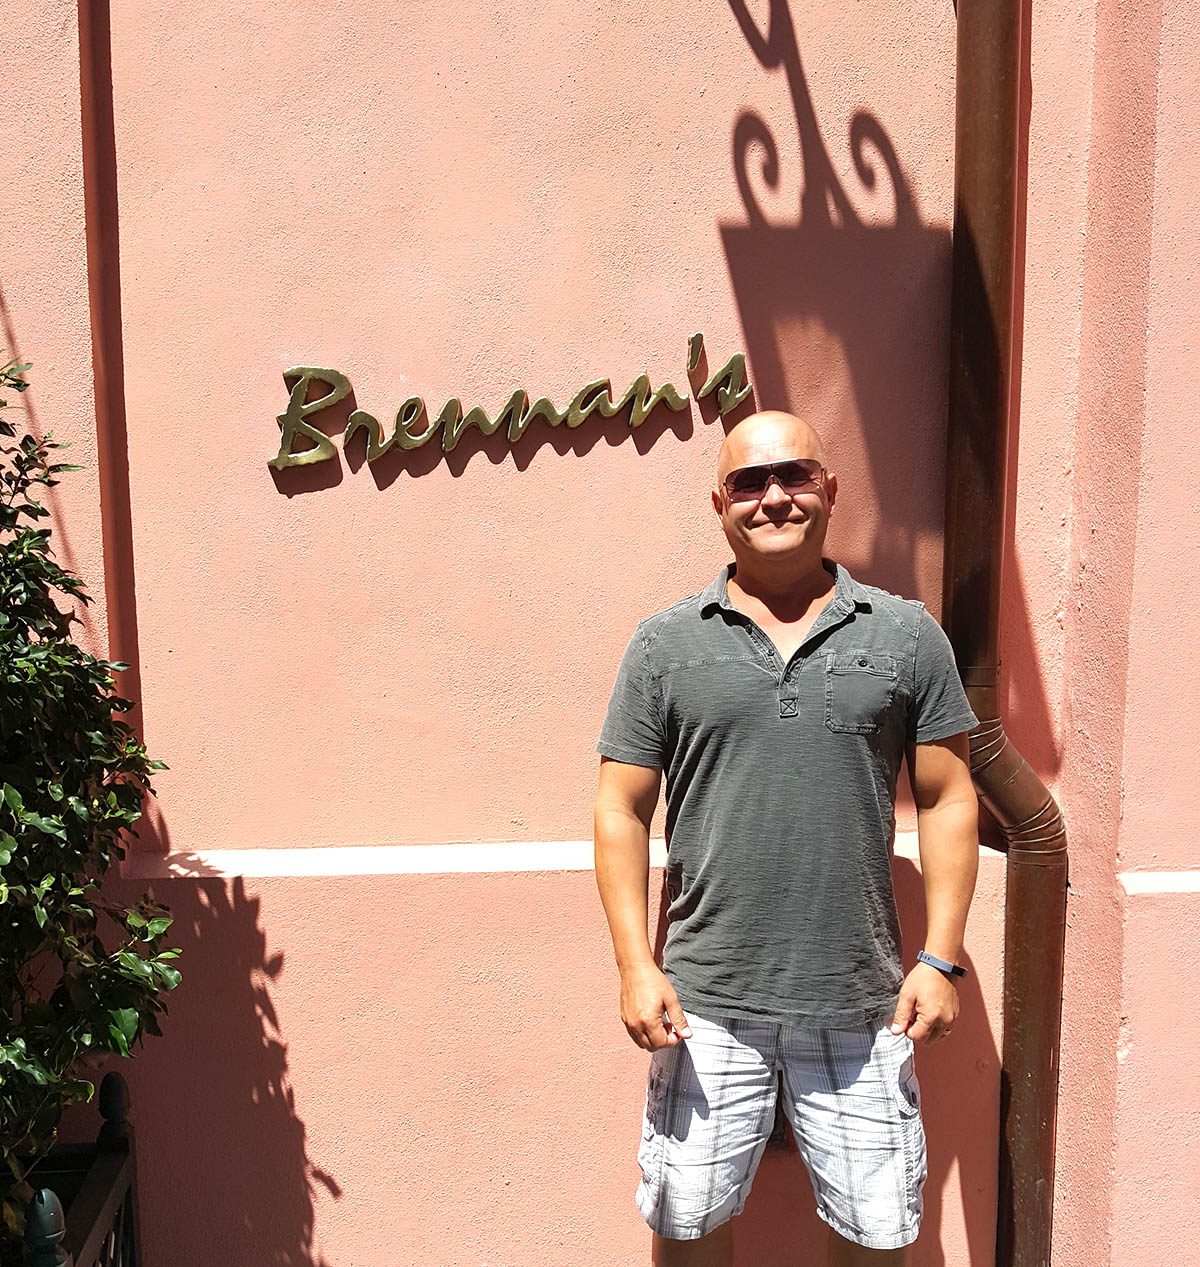 Brennan's in New Orleans, LA